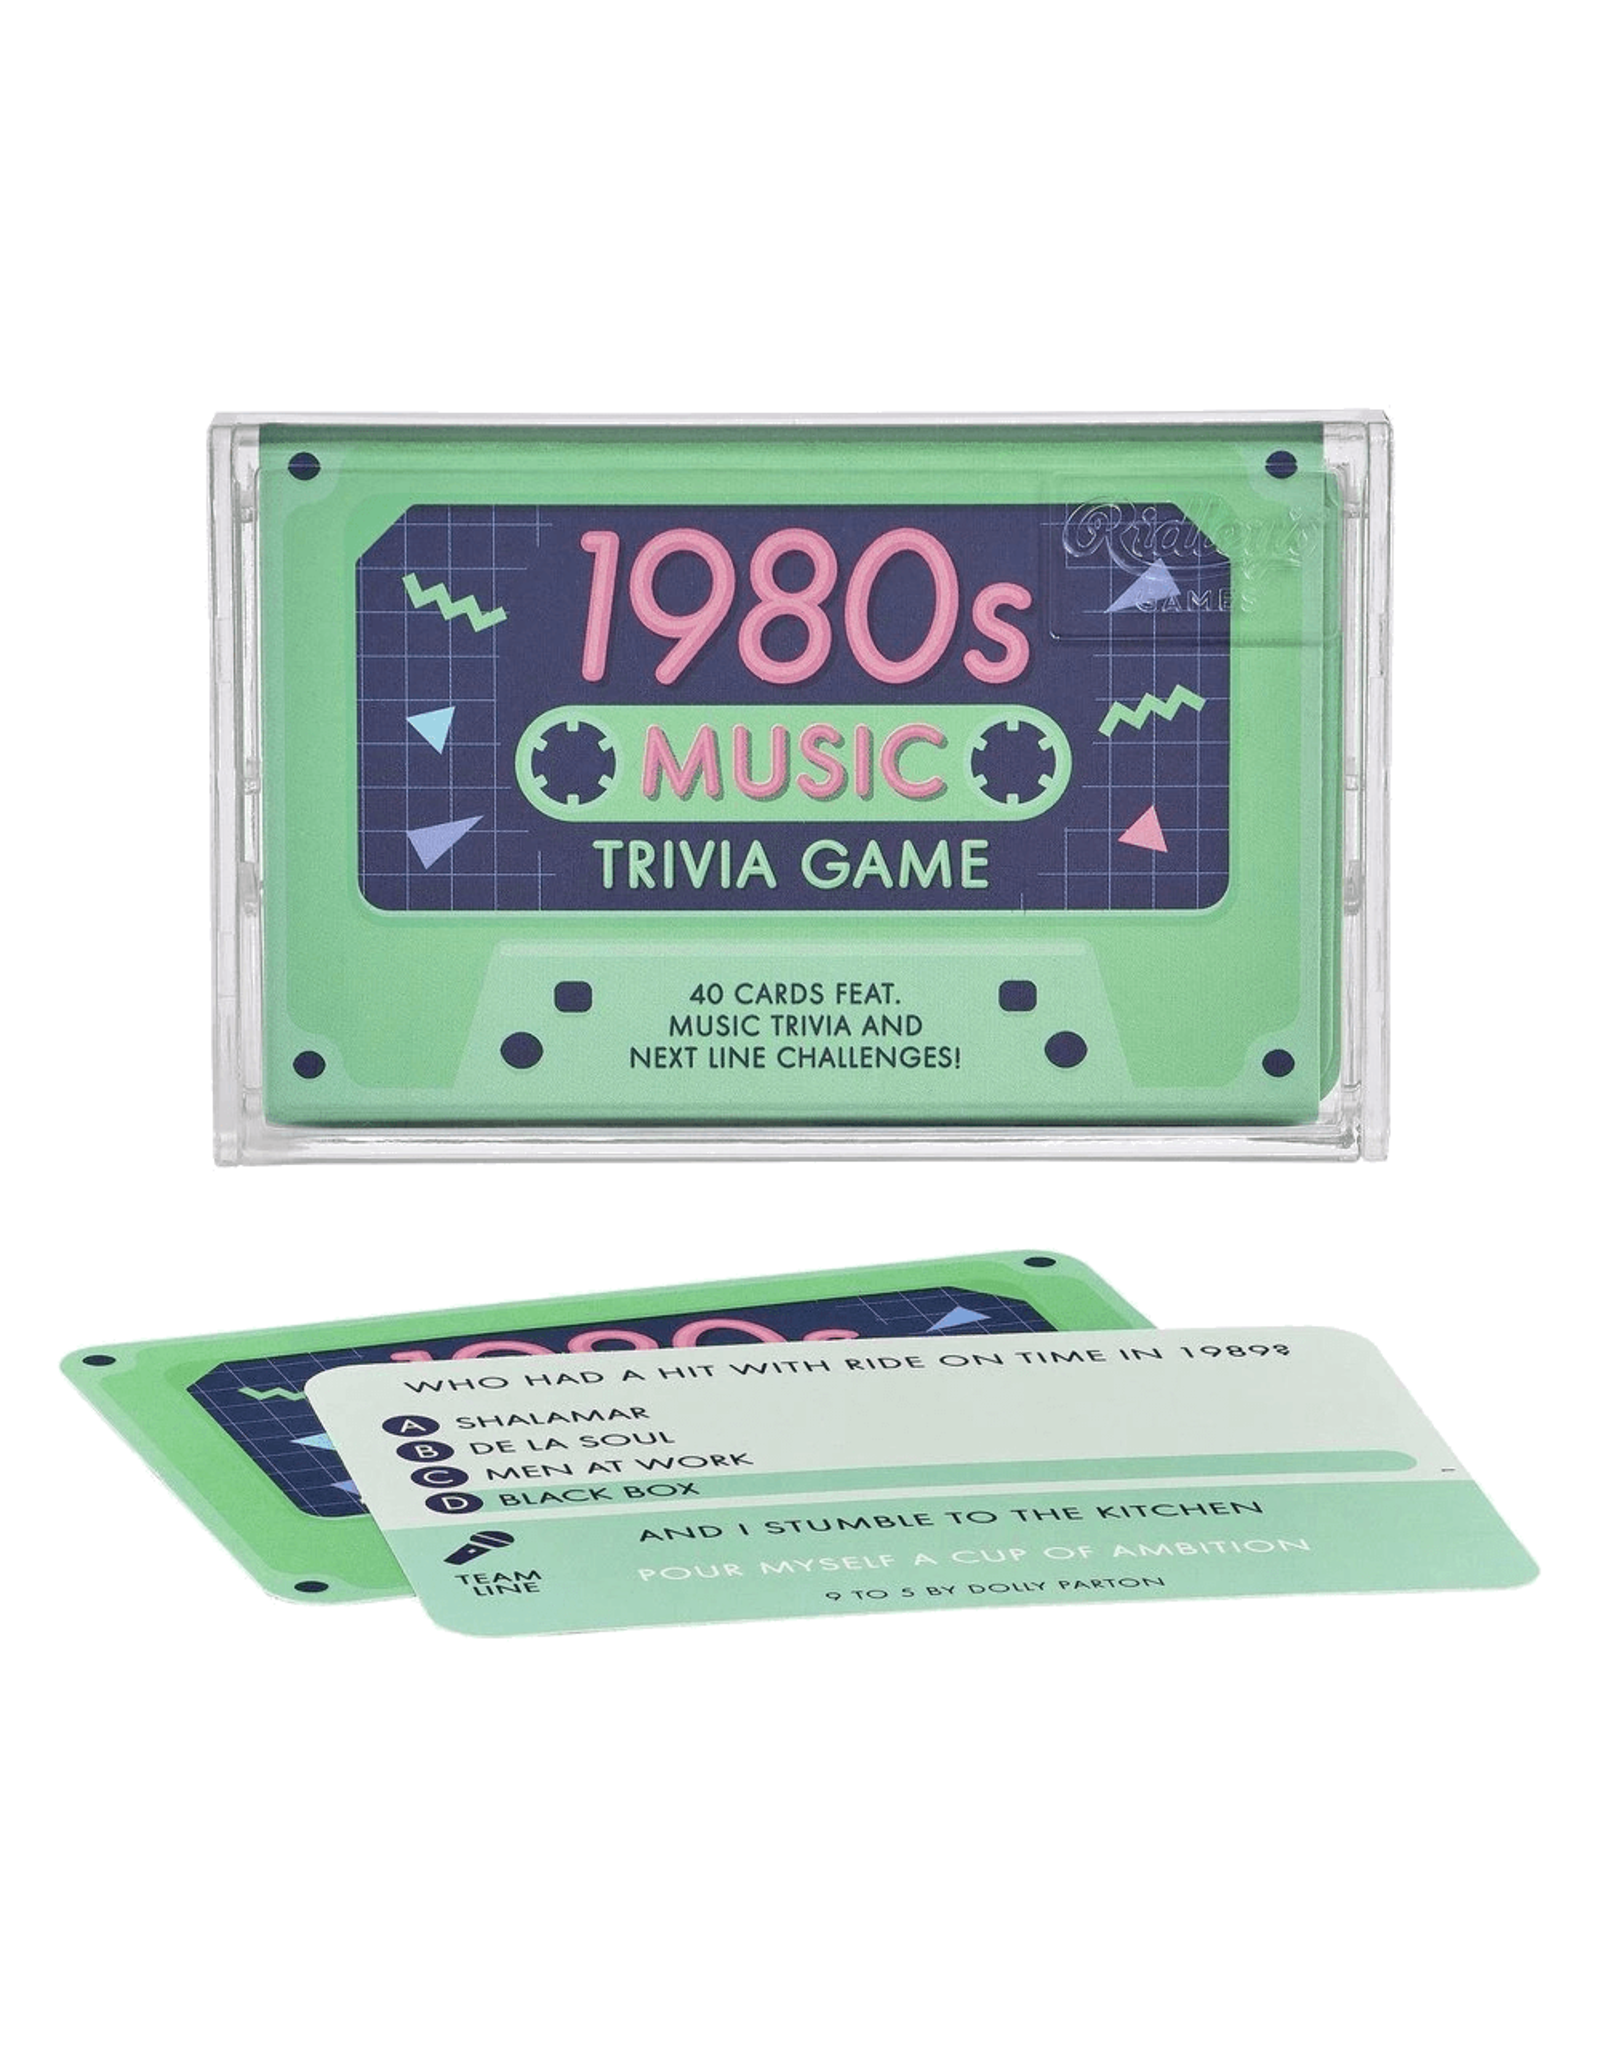 Wild and Wolf 1980s Music Trivia Game